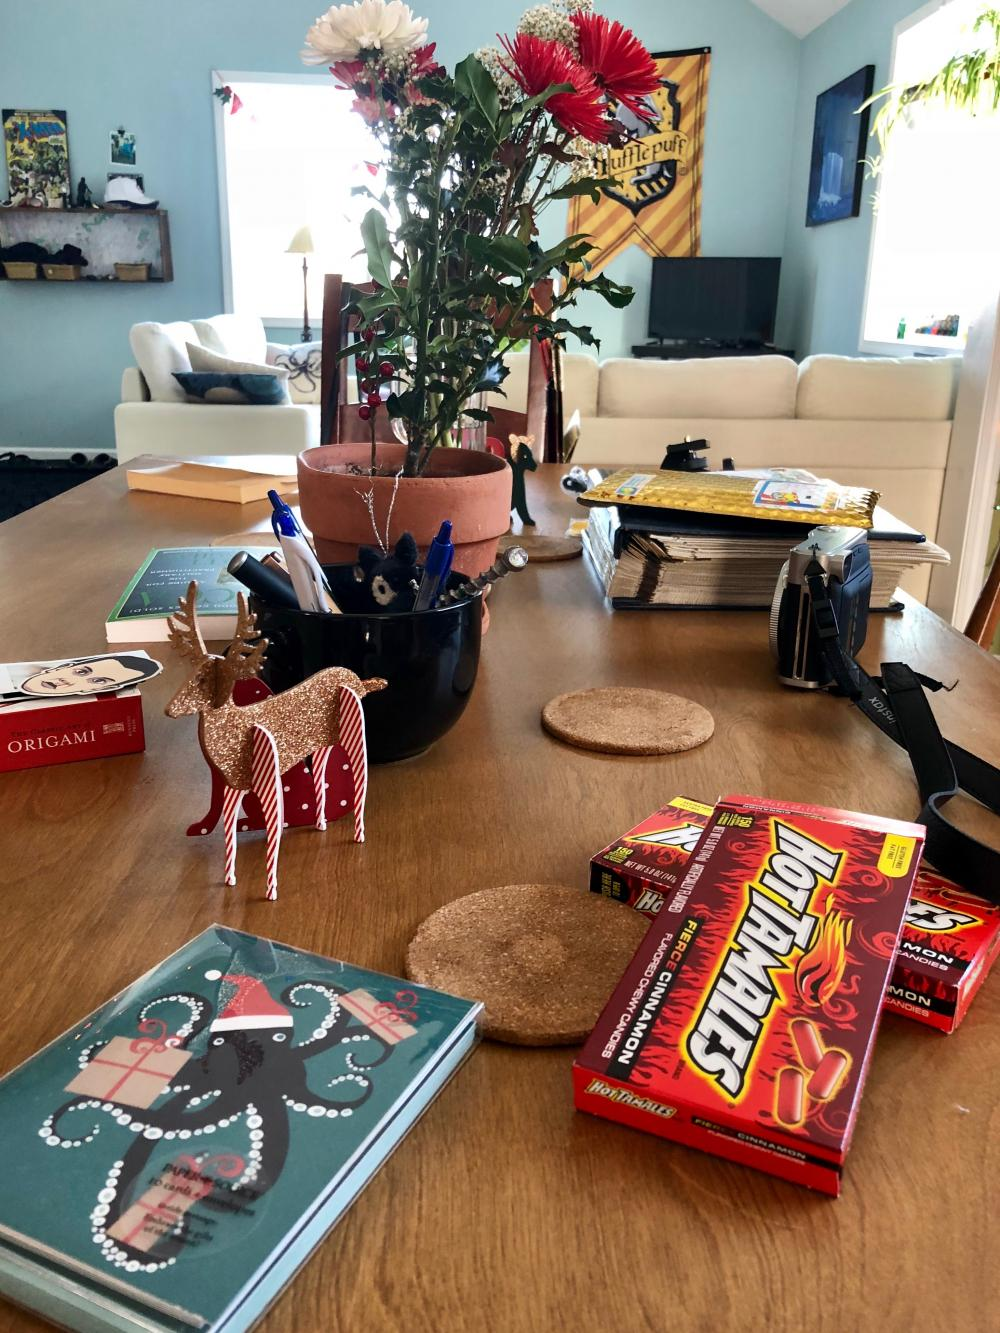 Dining room table after Christmas